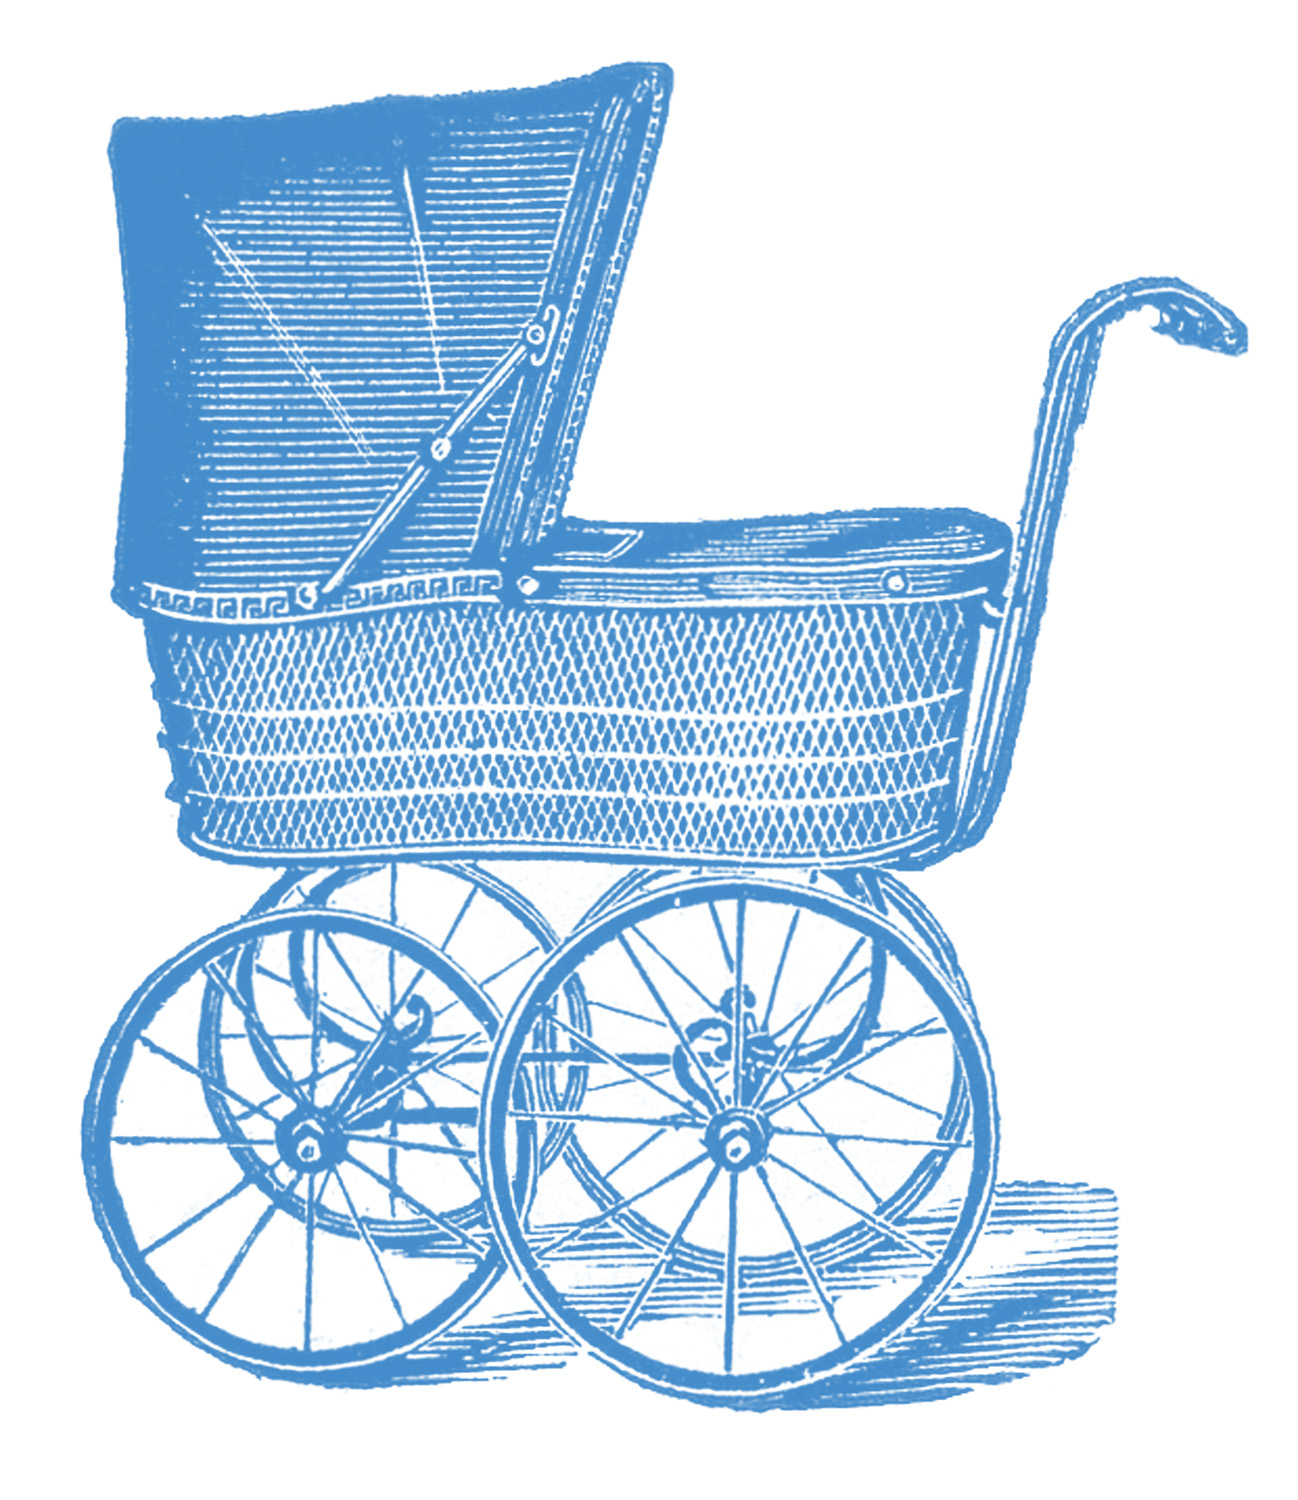 Carriage clipart vintage. Royalty free images baby